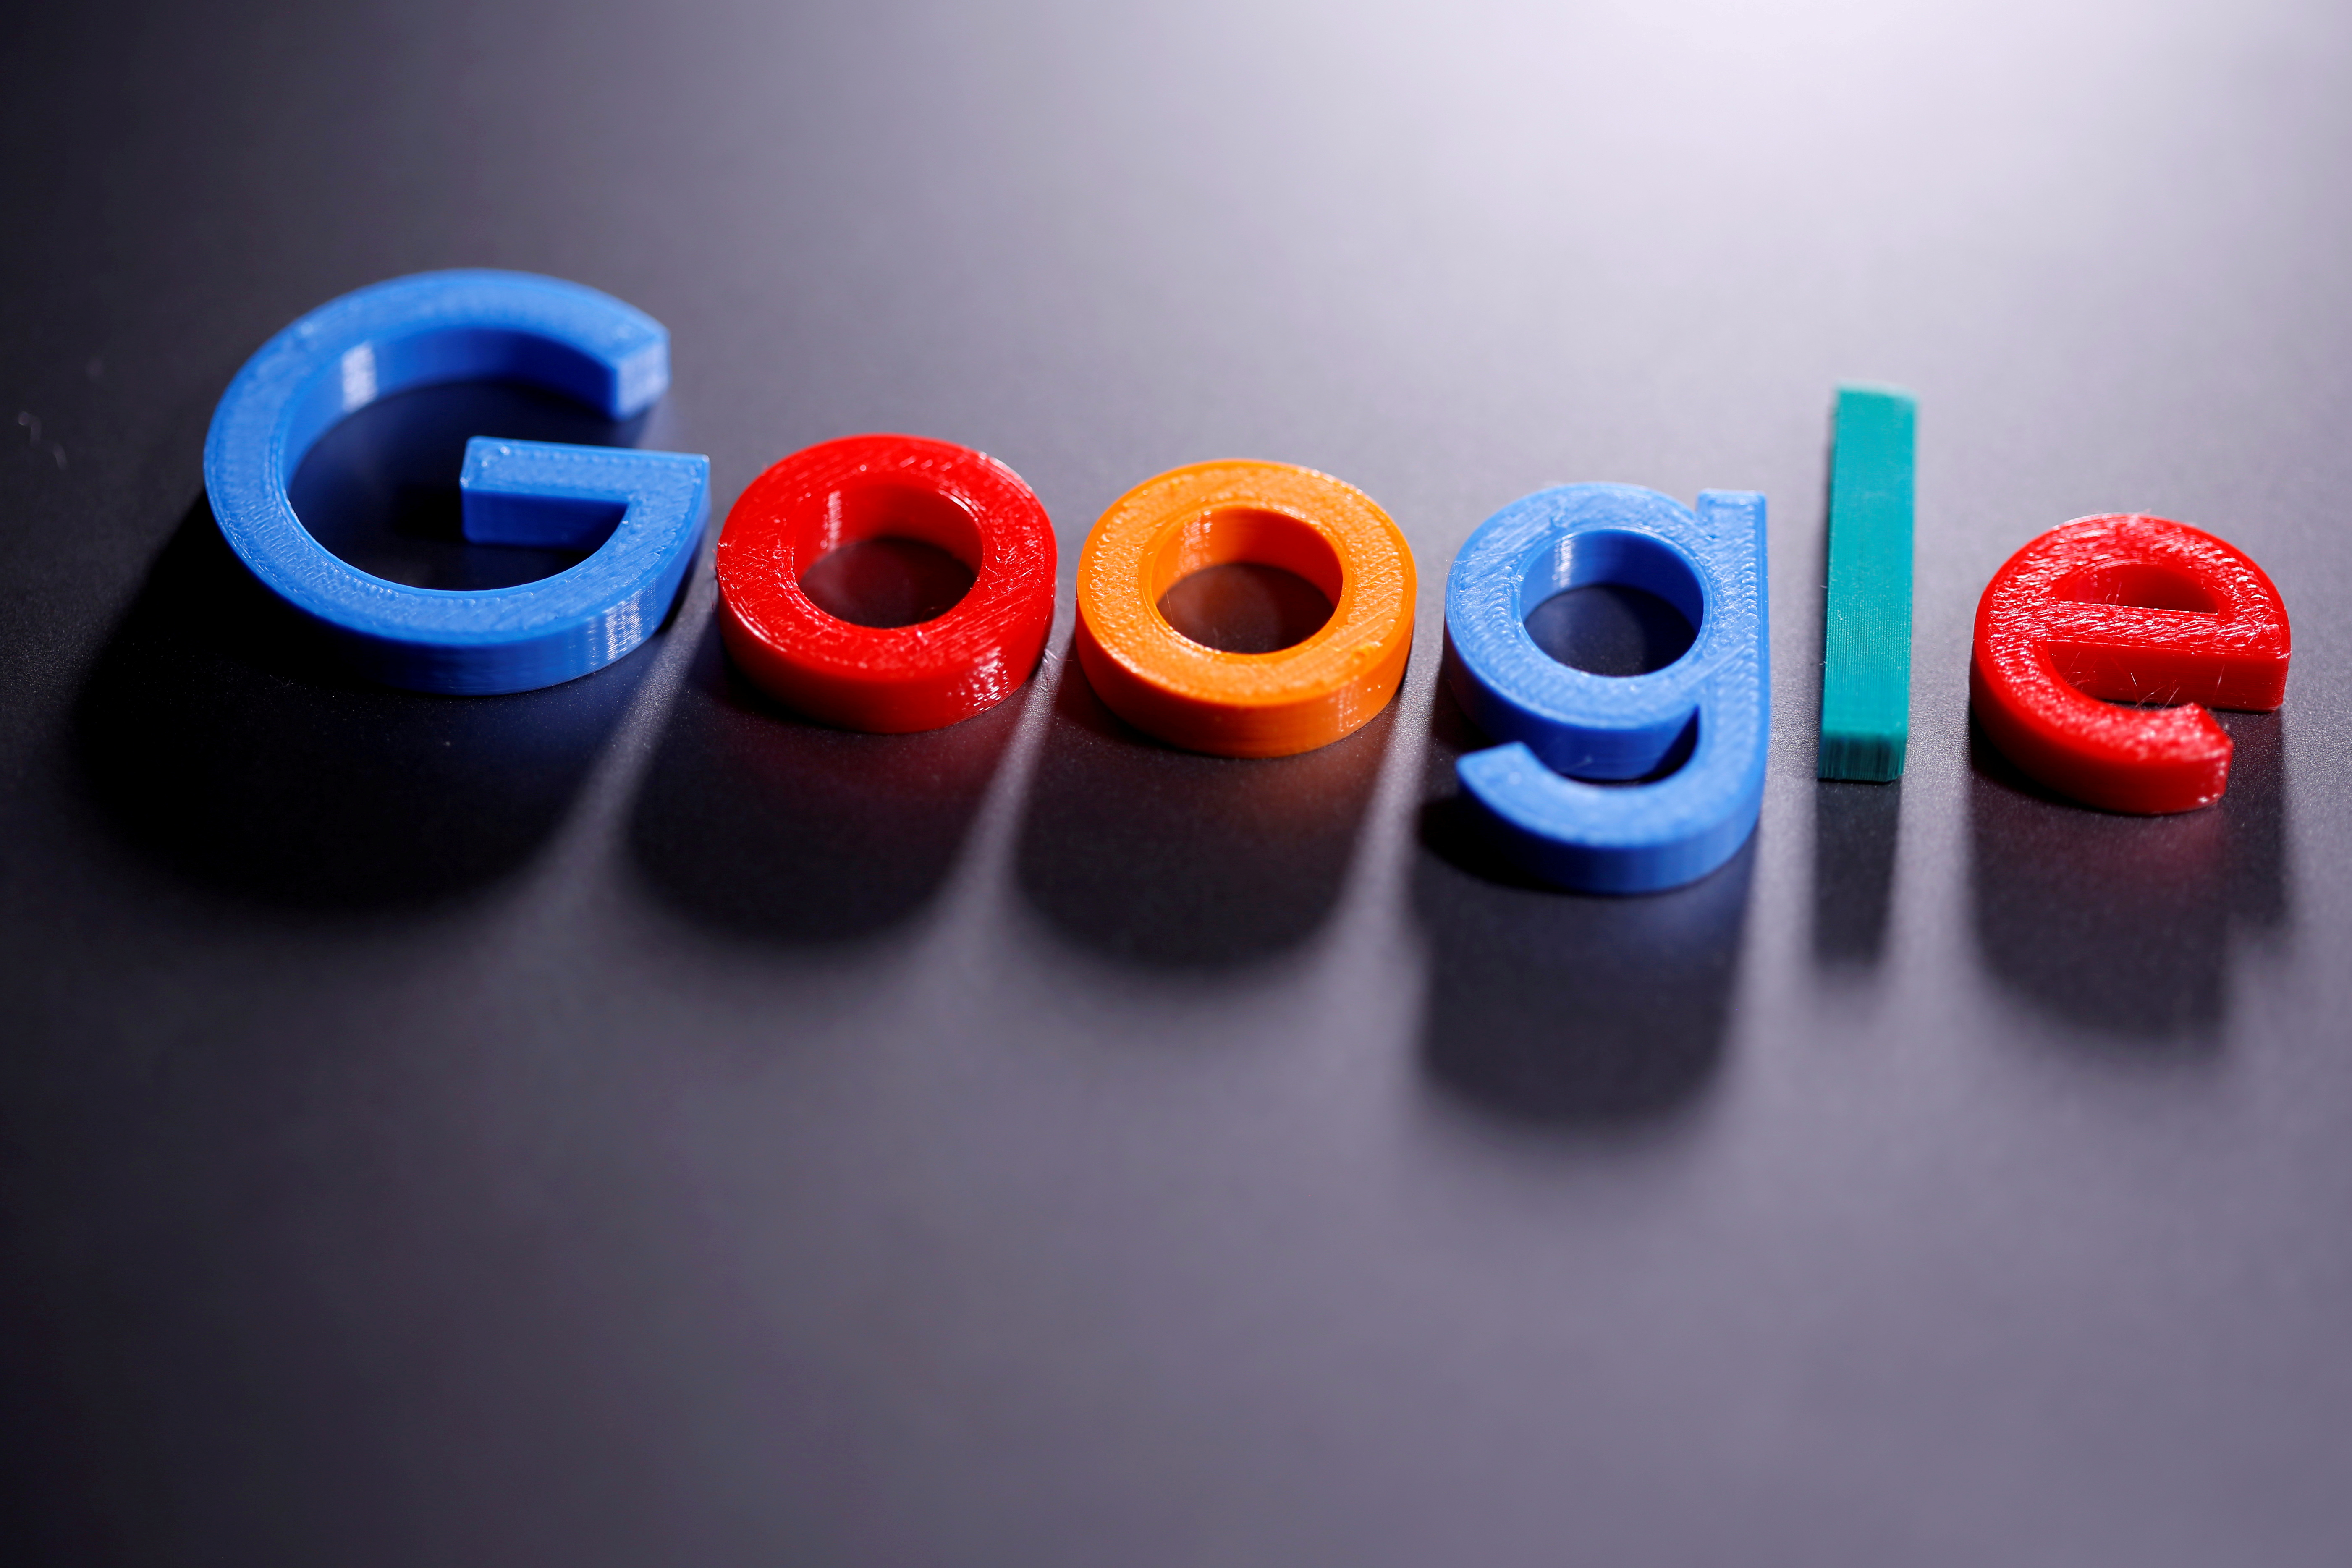 A 3D printed Google logo is seen in this illustration. REUTERS/Dado Ruvic/Illustration